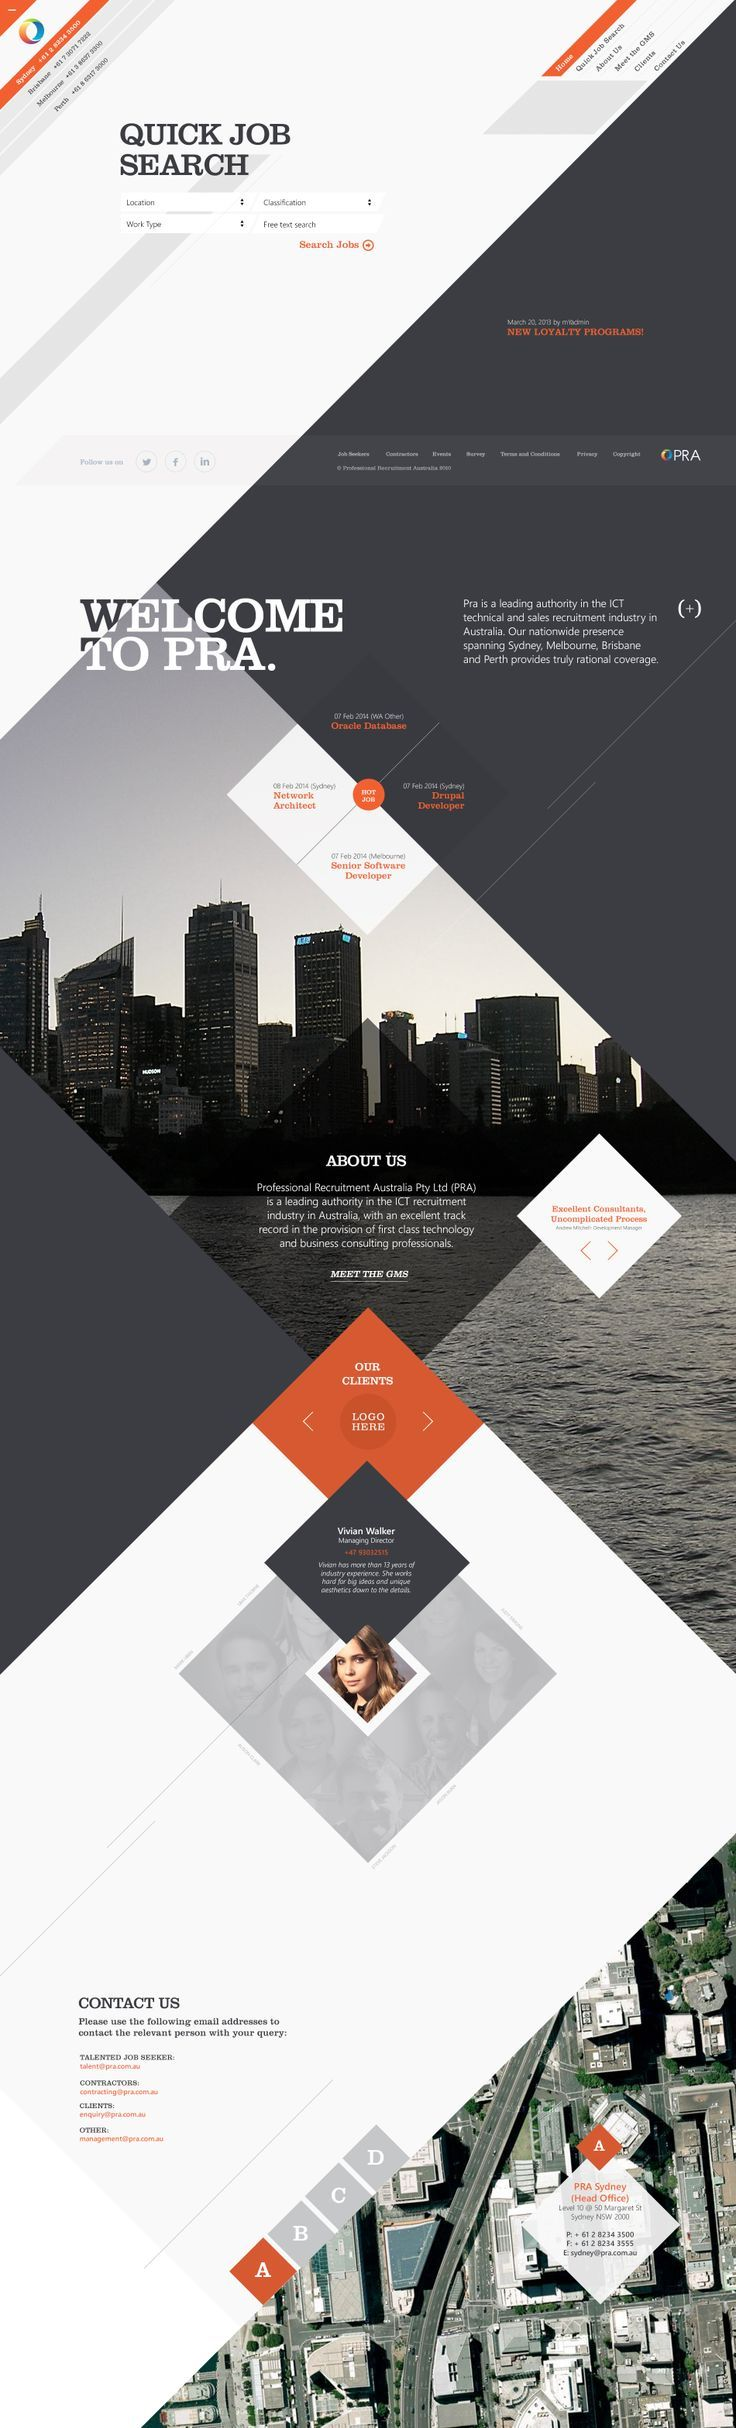 best 웹디자인 images on pinterest page layout web layout and